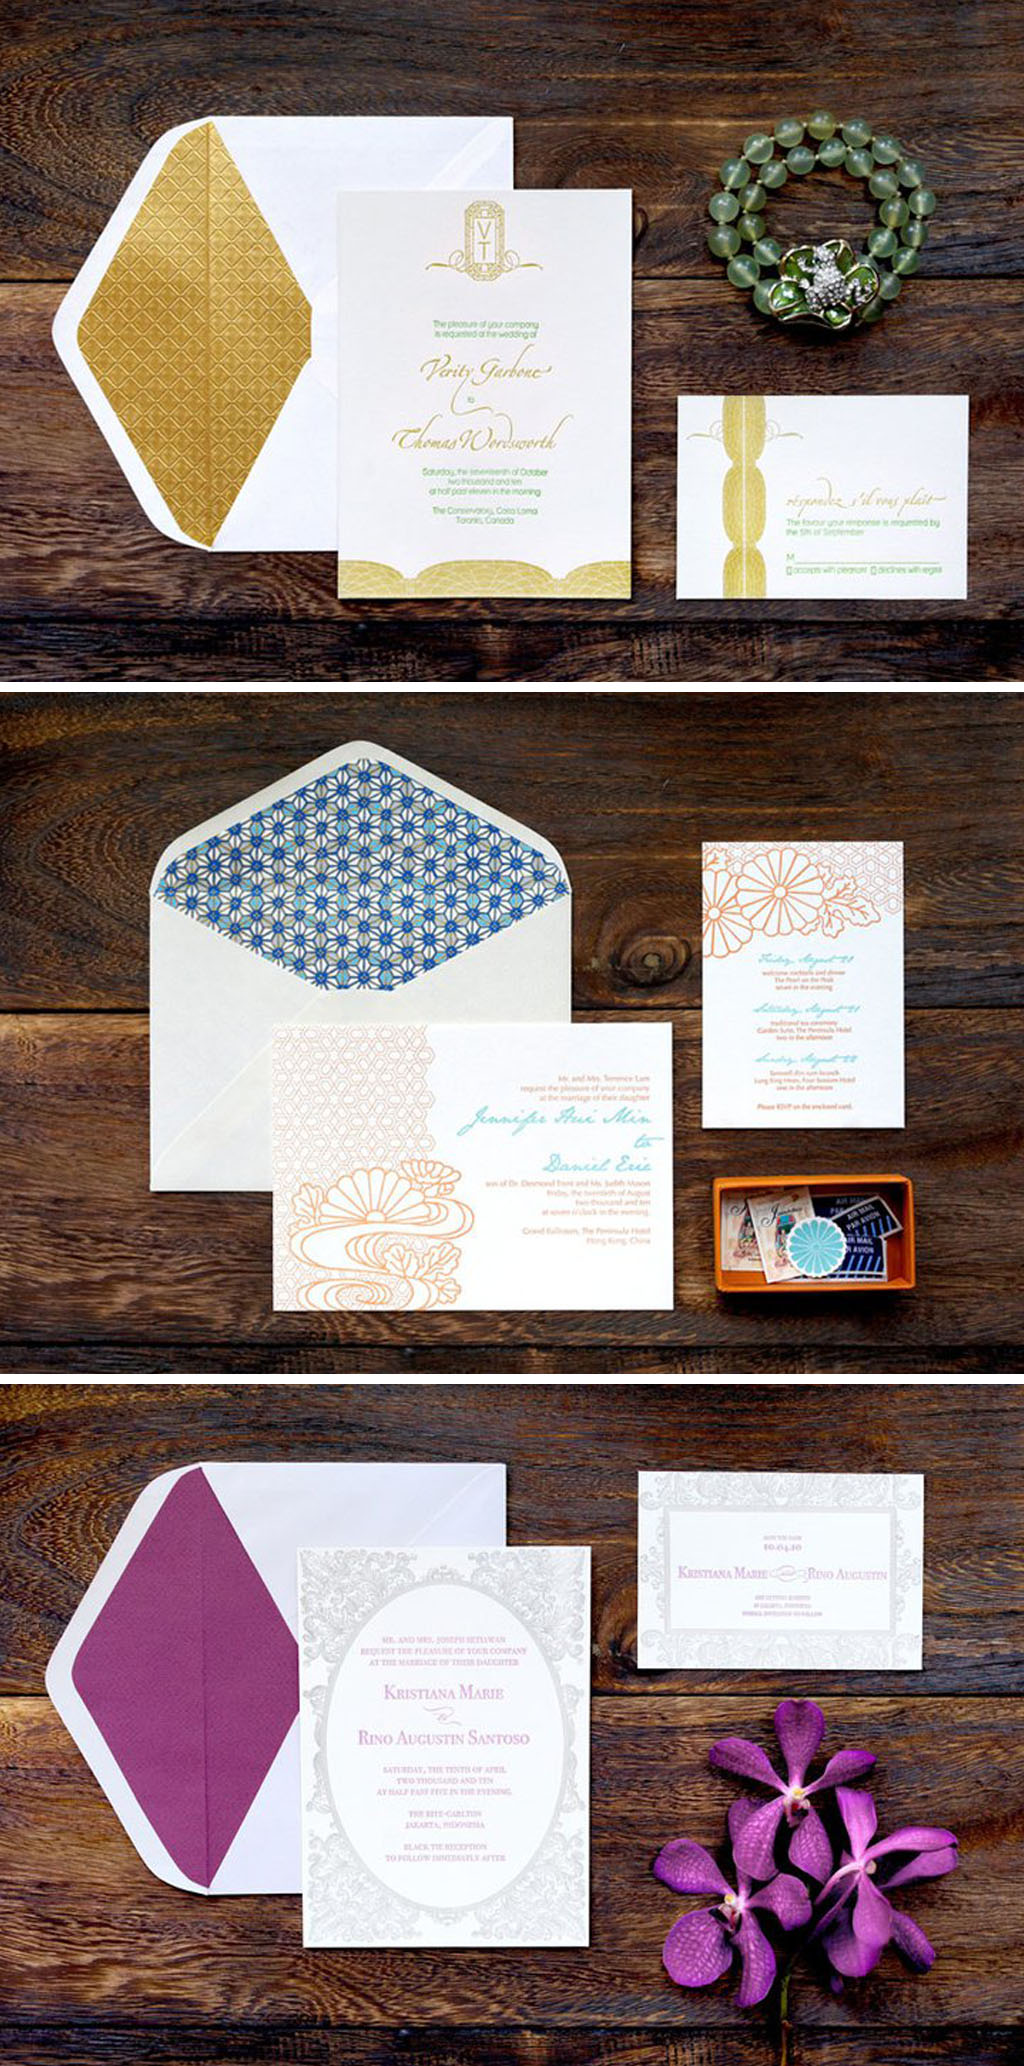 Wedding Invitation Cards in Singapore: 5 Online Stores to Explore ...